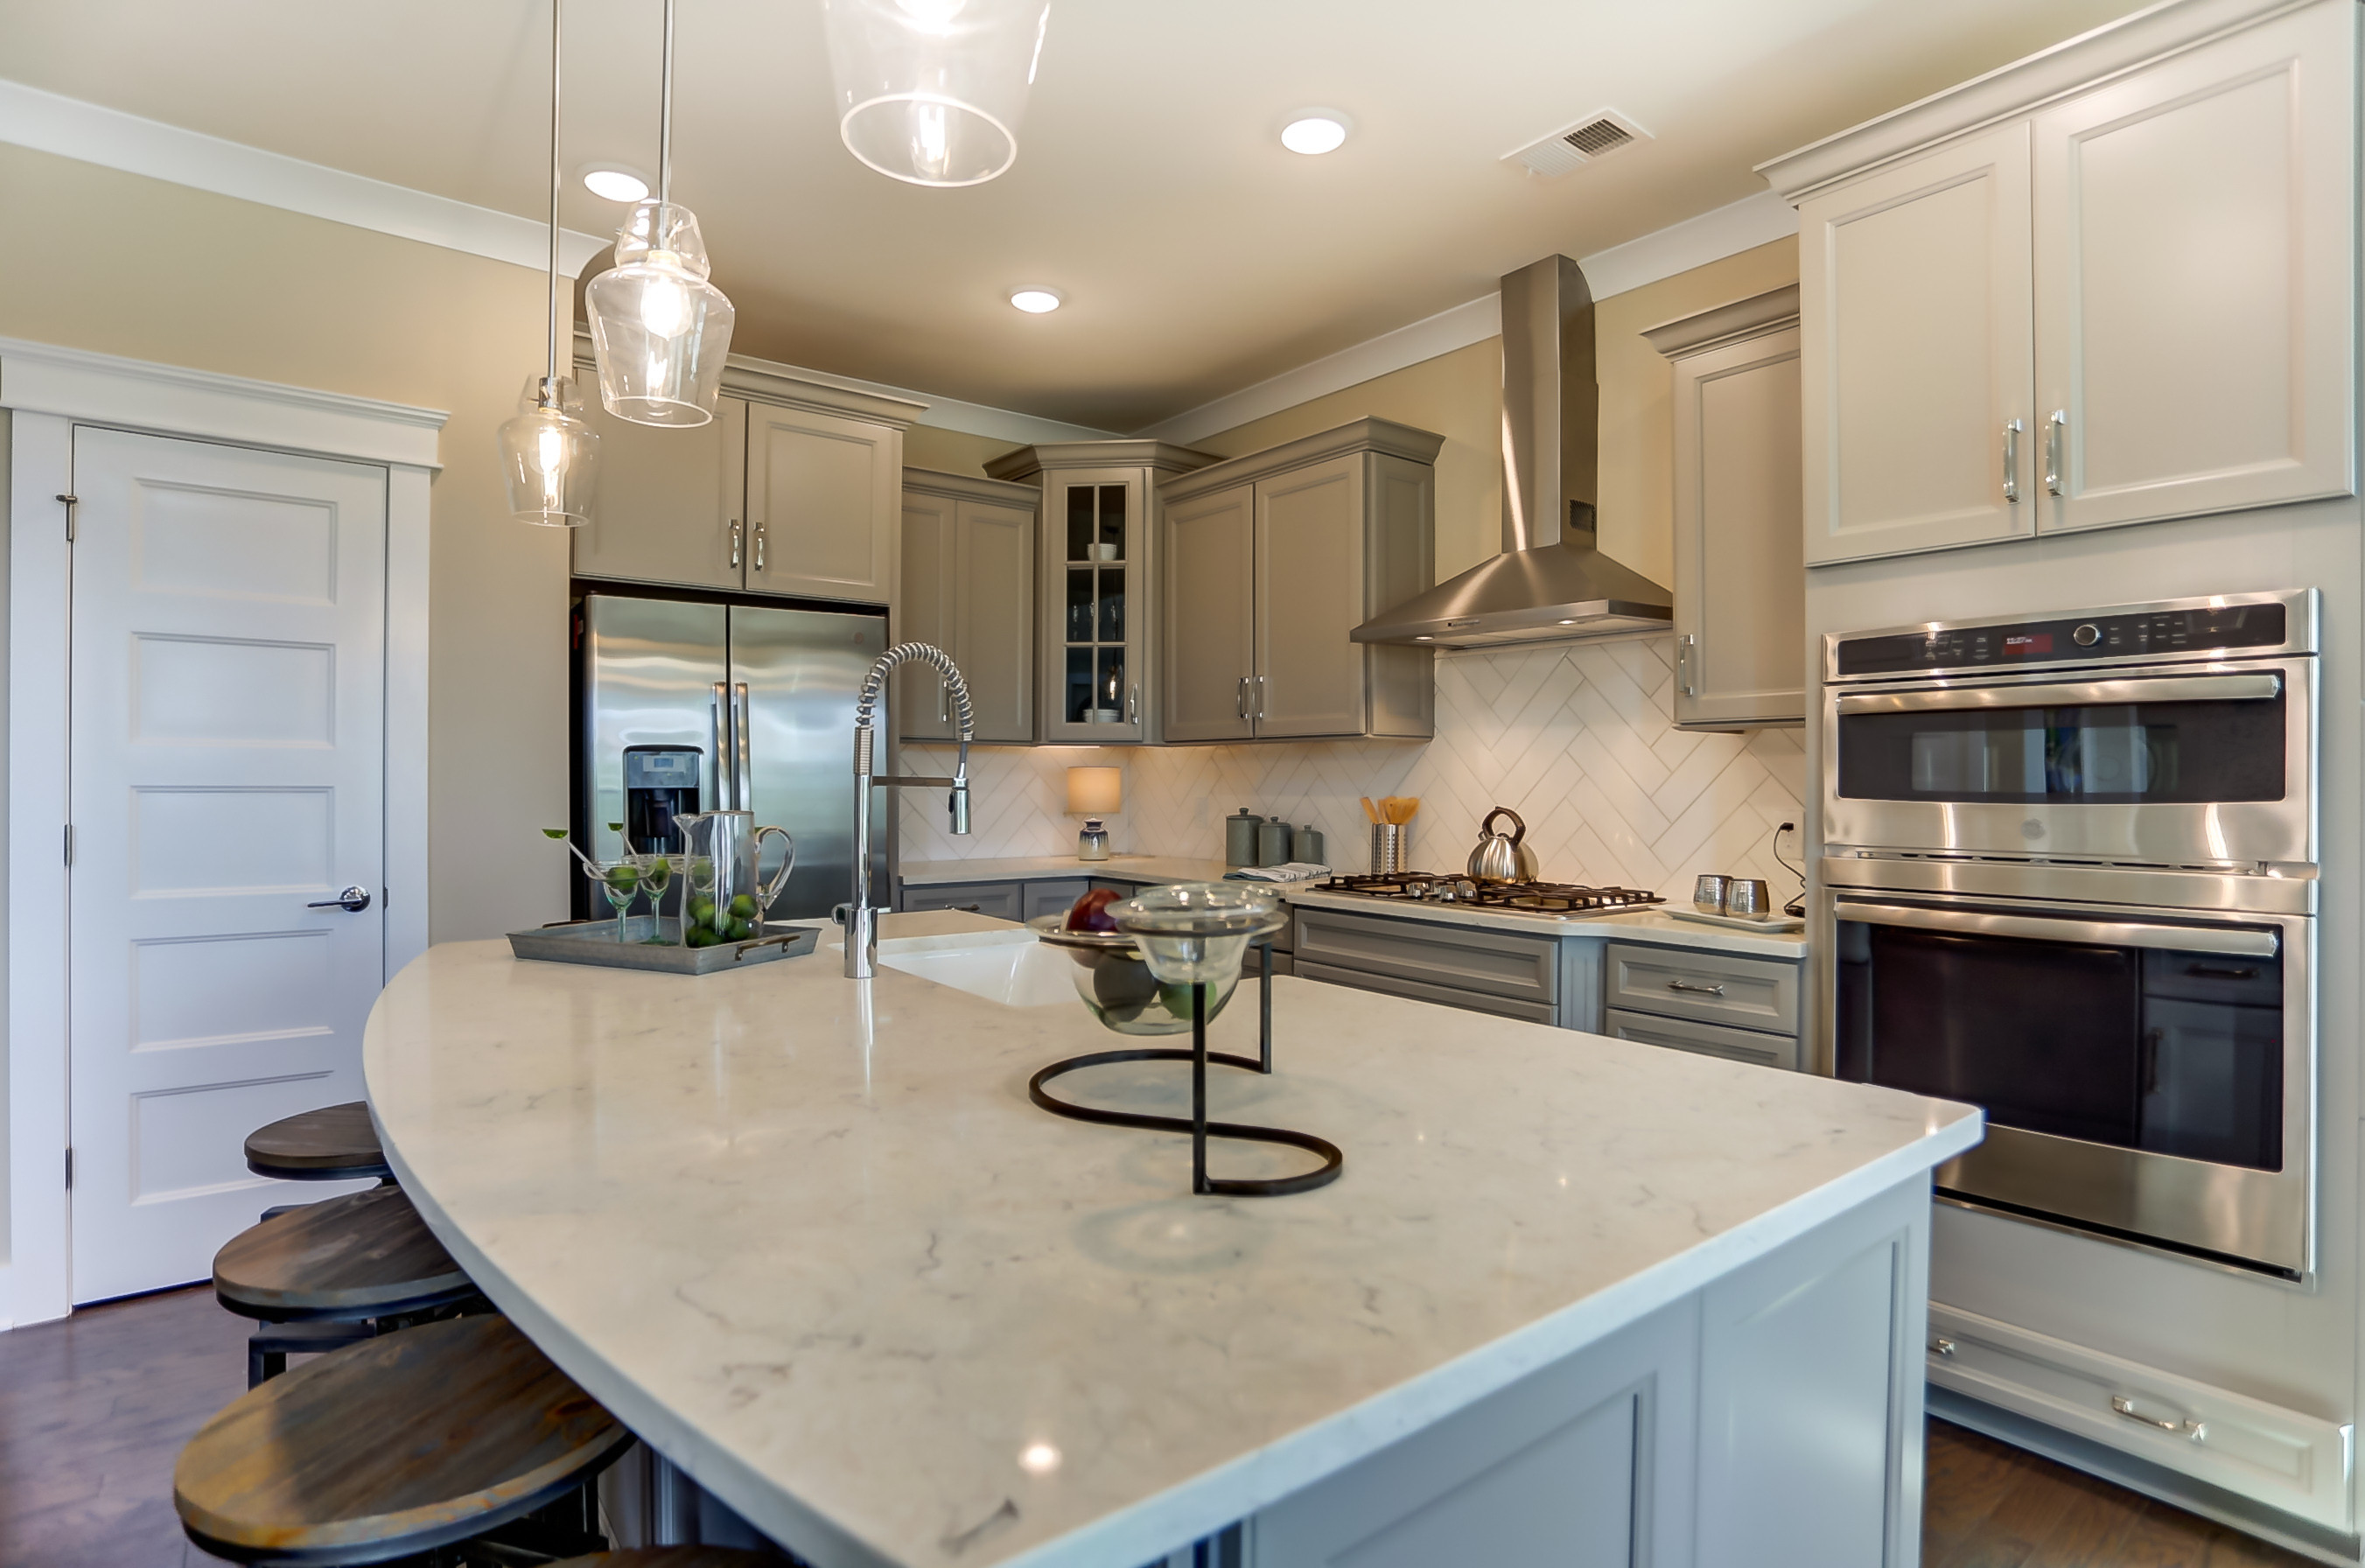 raleigh-legacy park-kitchen.jpg